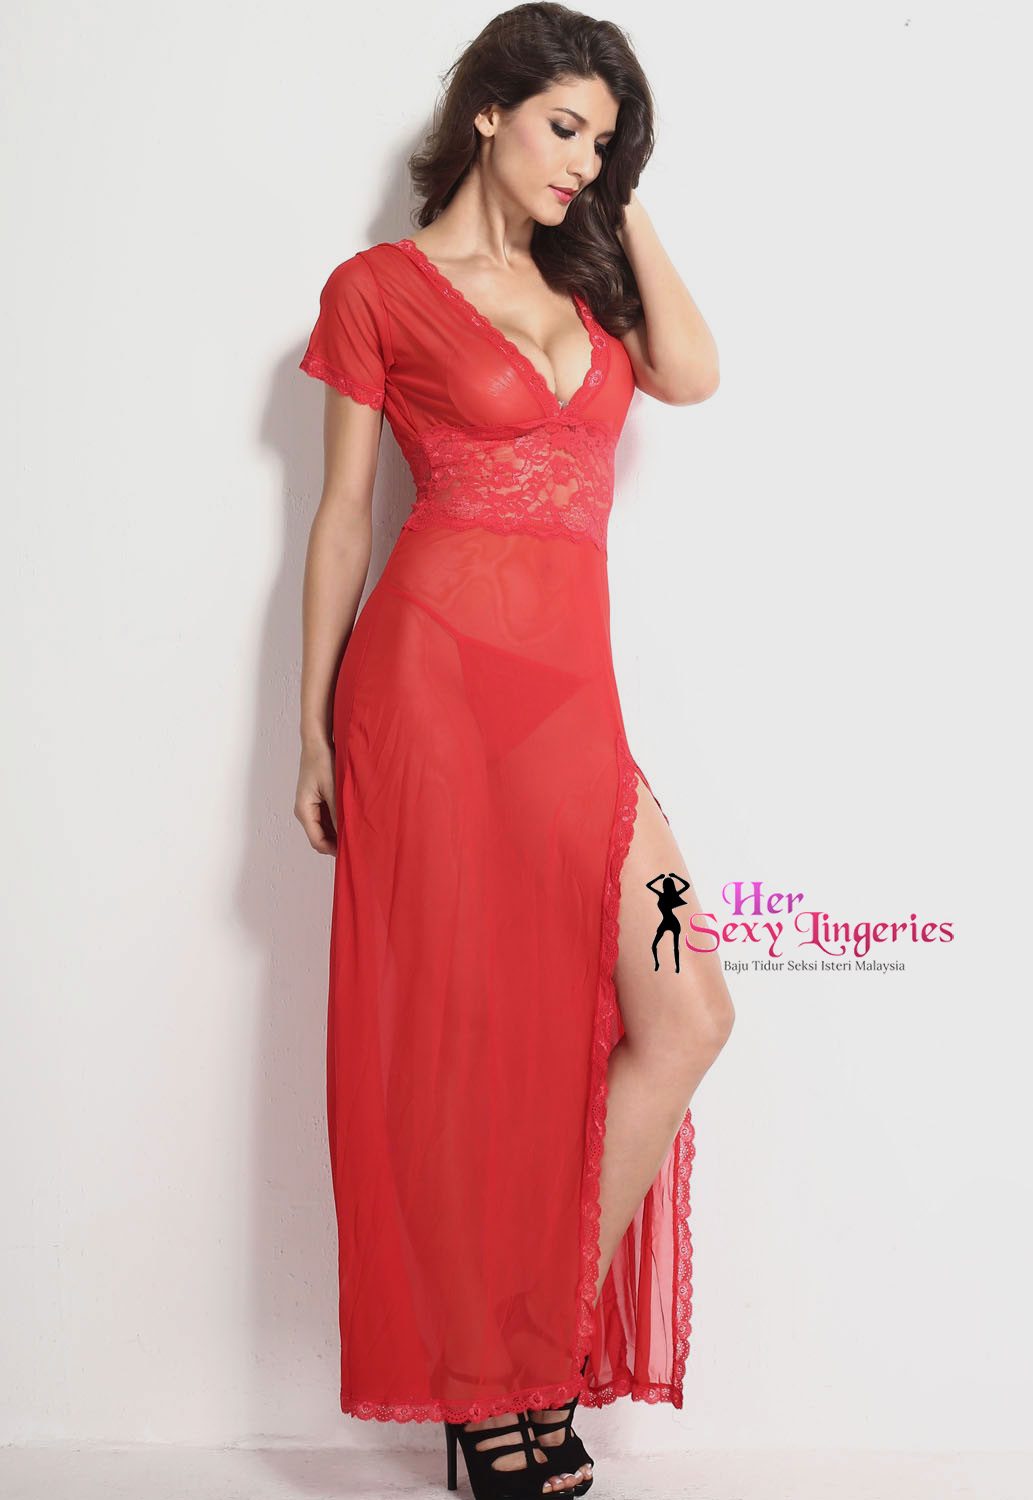 Lace Long Dress Nightwear Lingeries Sexy 1b.jpg